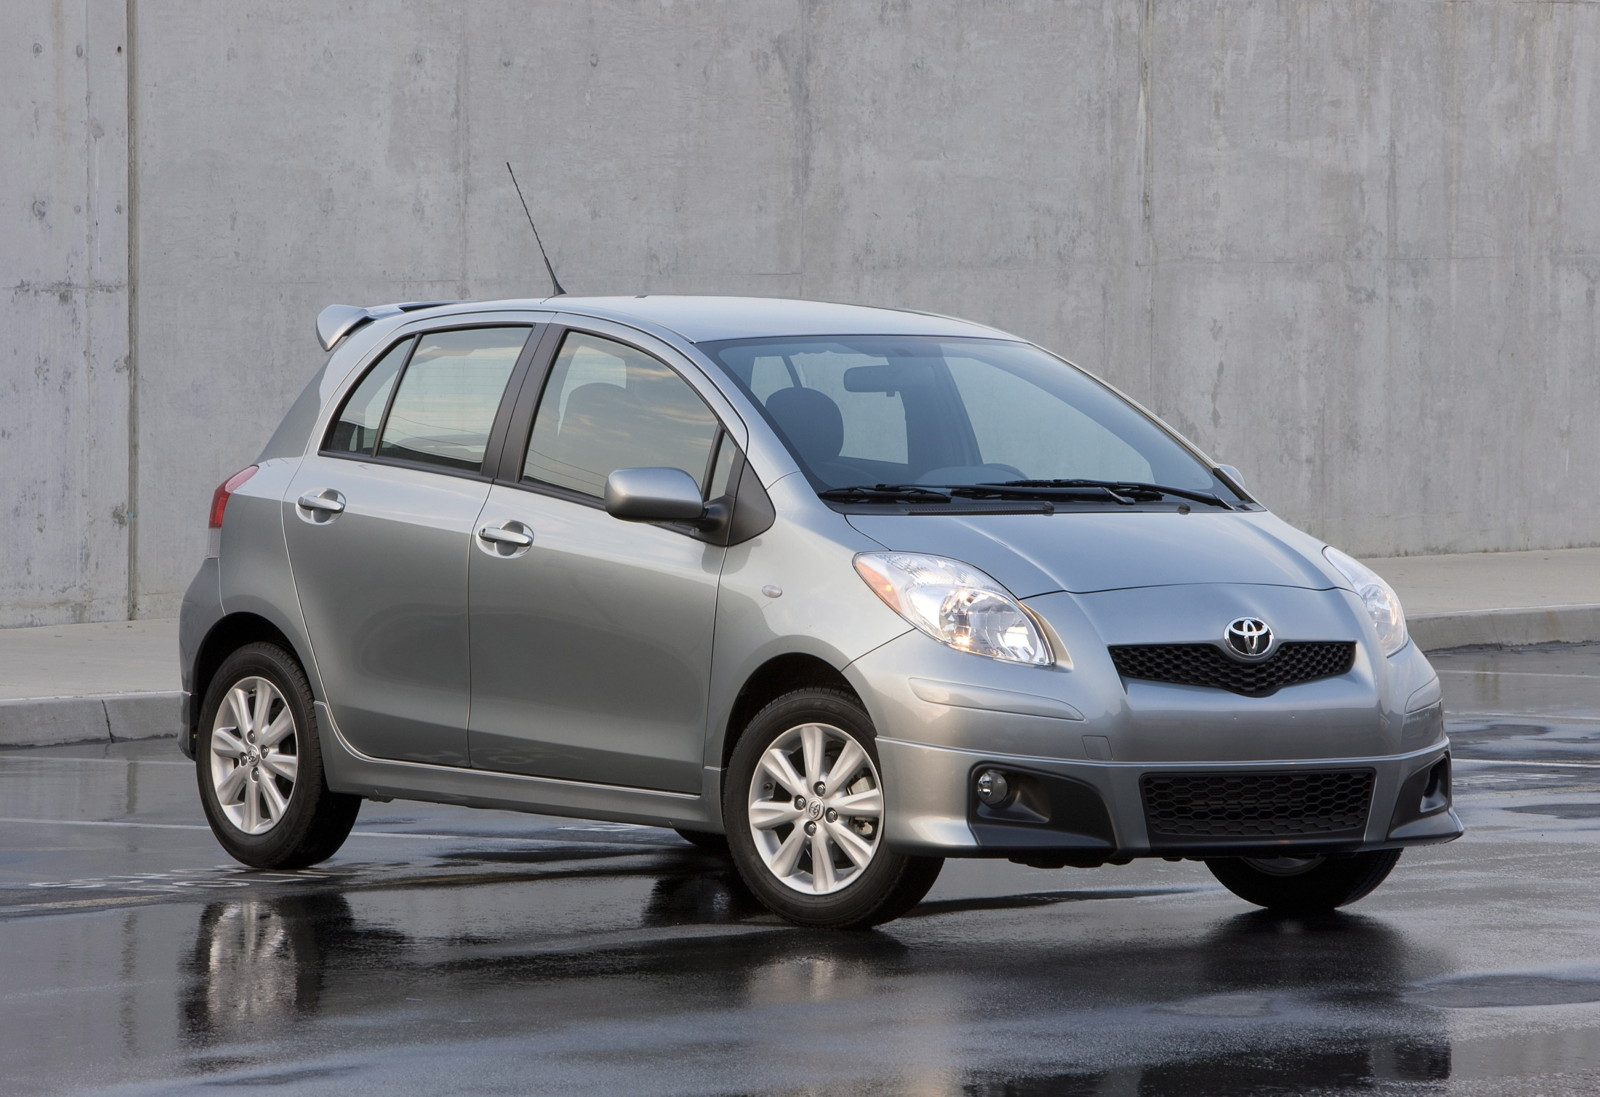 Bmw Of Fresno >> 2010 Toyota Yaris Review, Ratings, Specs, Prices, and Photos - The Car Connection